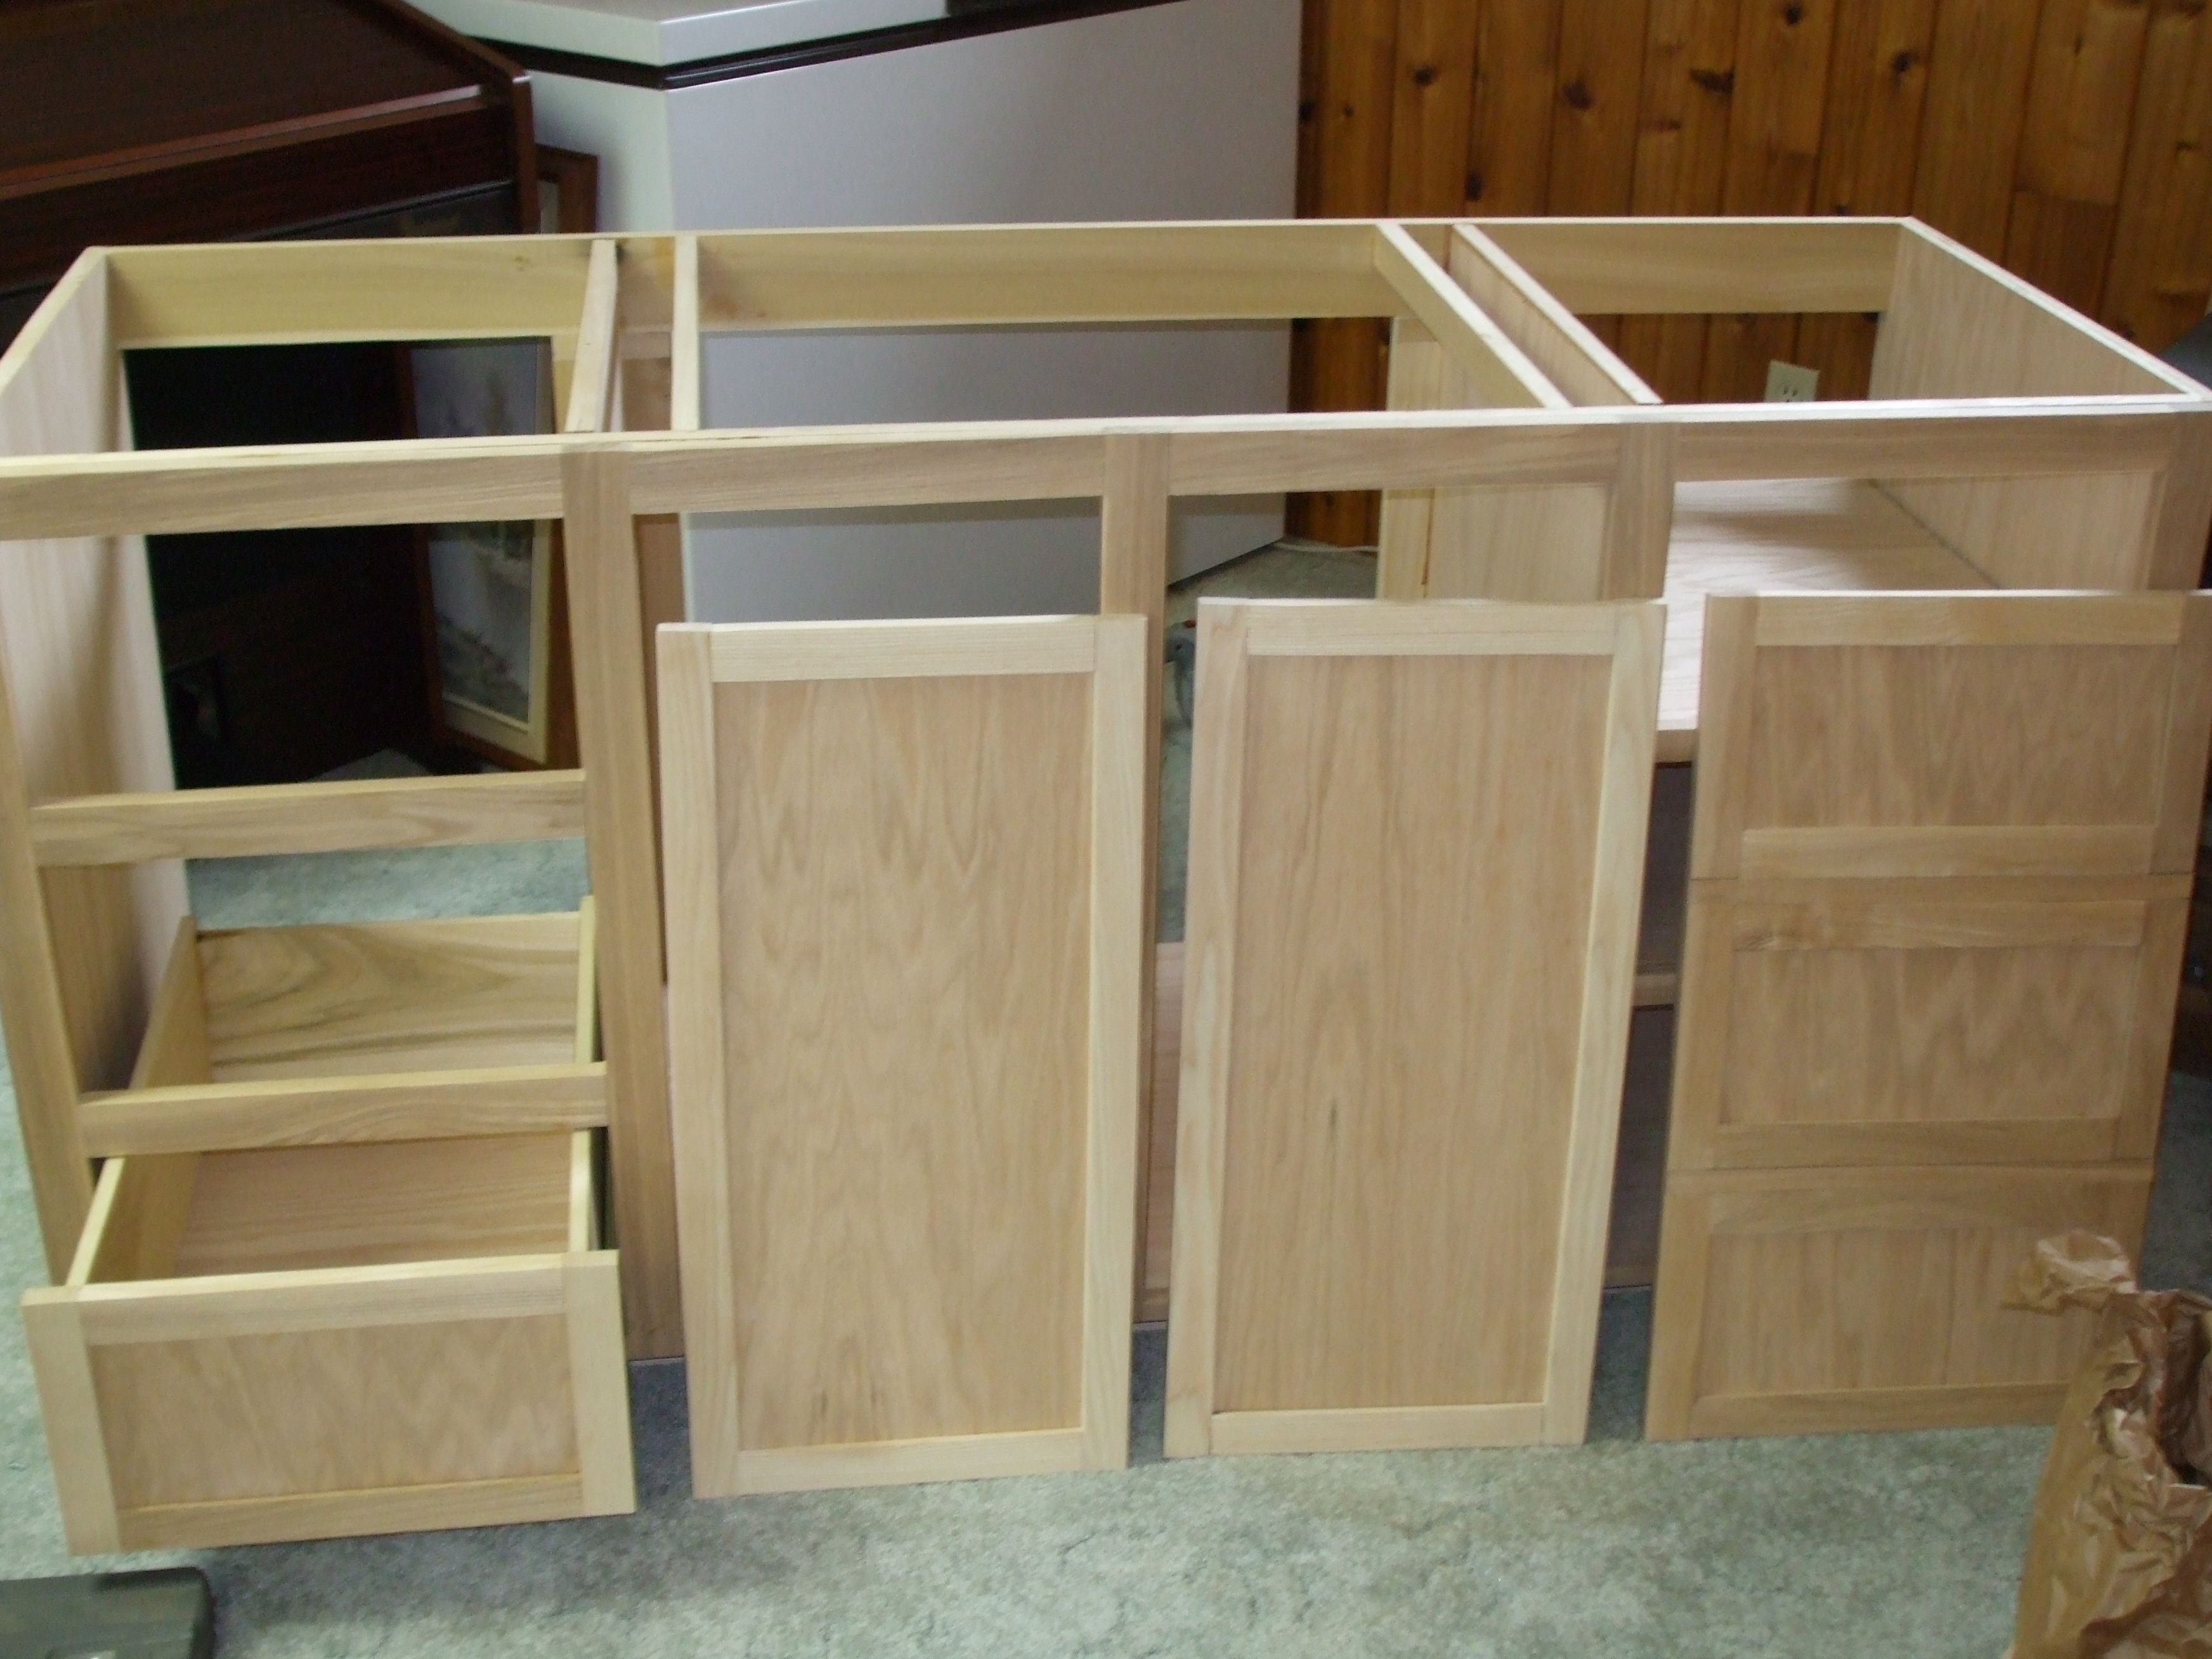 We Have Actually Got Fine Woodworking That Will Certainly Help You Develop Bed Frameworks C Cheap Woodworking Projects Diy Furniture Plans Diy Bathroom Vanity